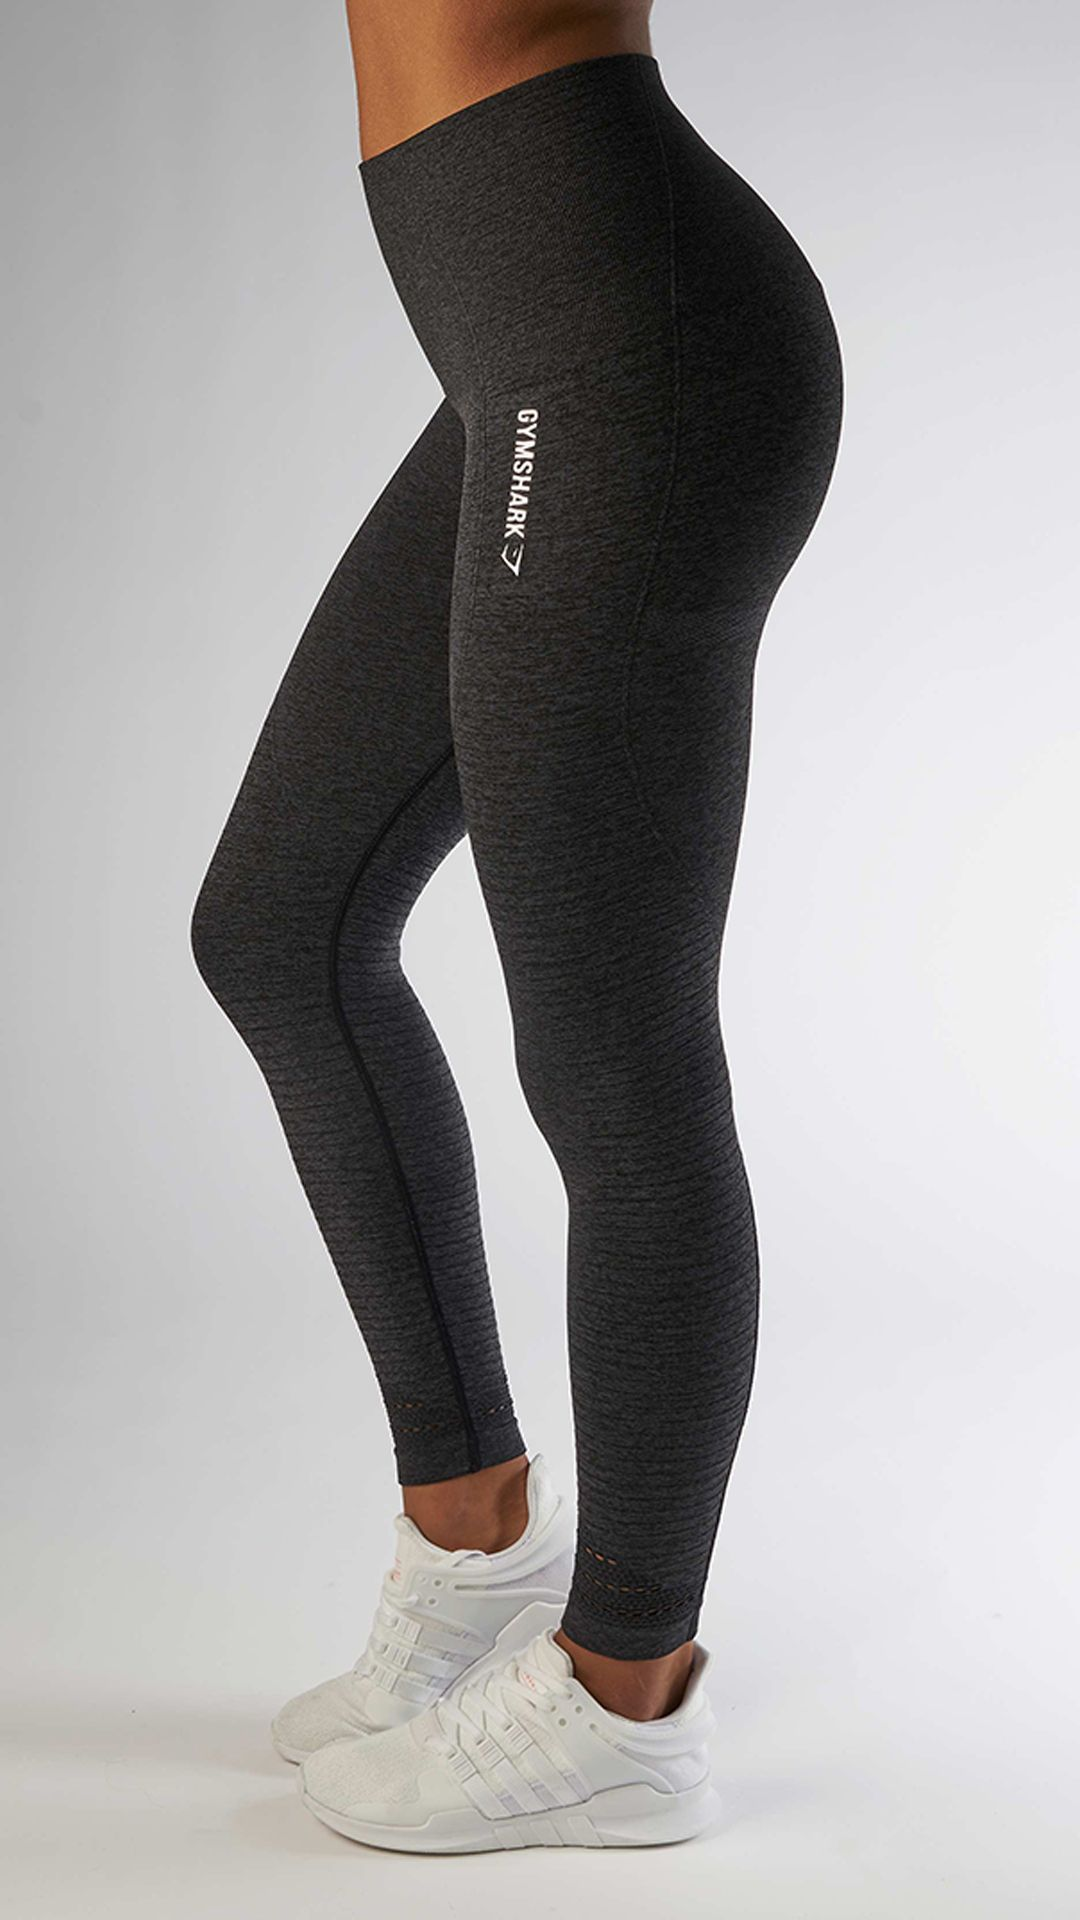 e04c1511cc9ca9 With their stunning and form fitting shape, the Seamless High Waisted  leggings in black are